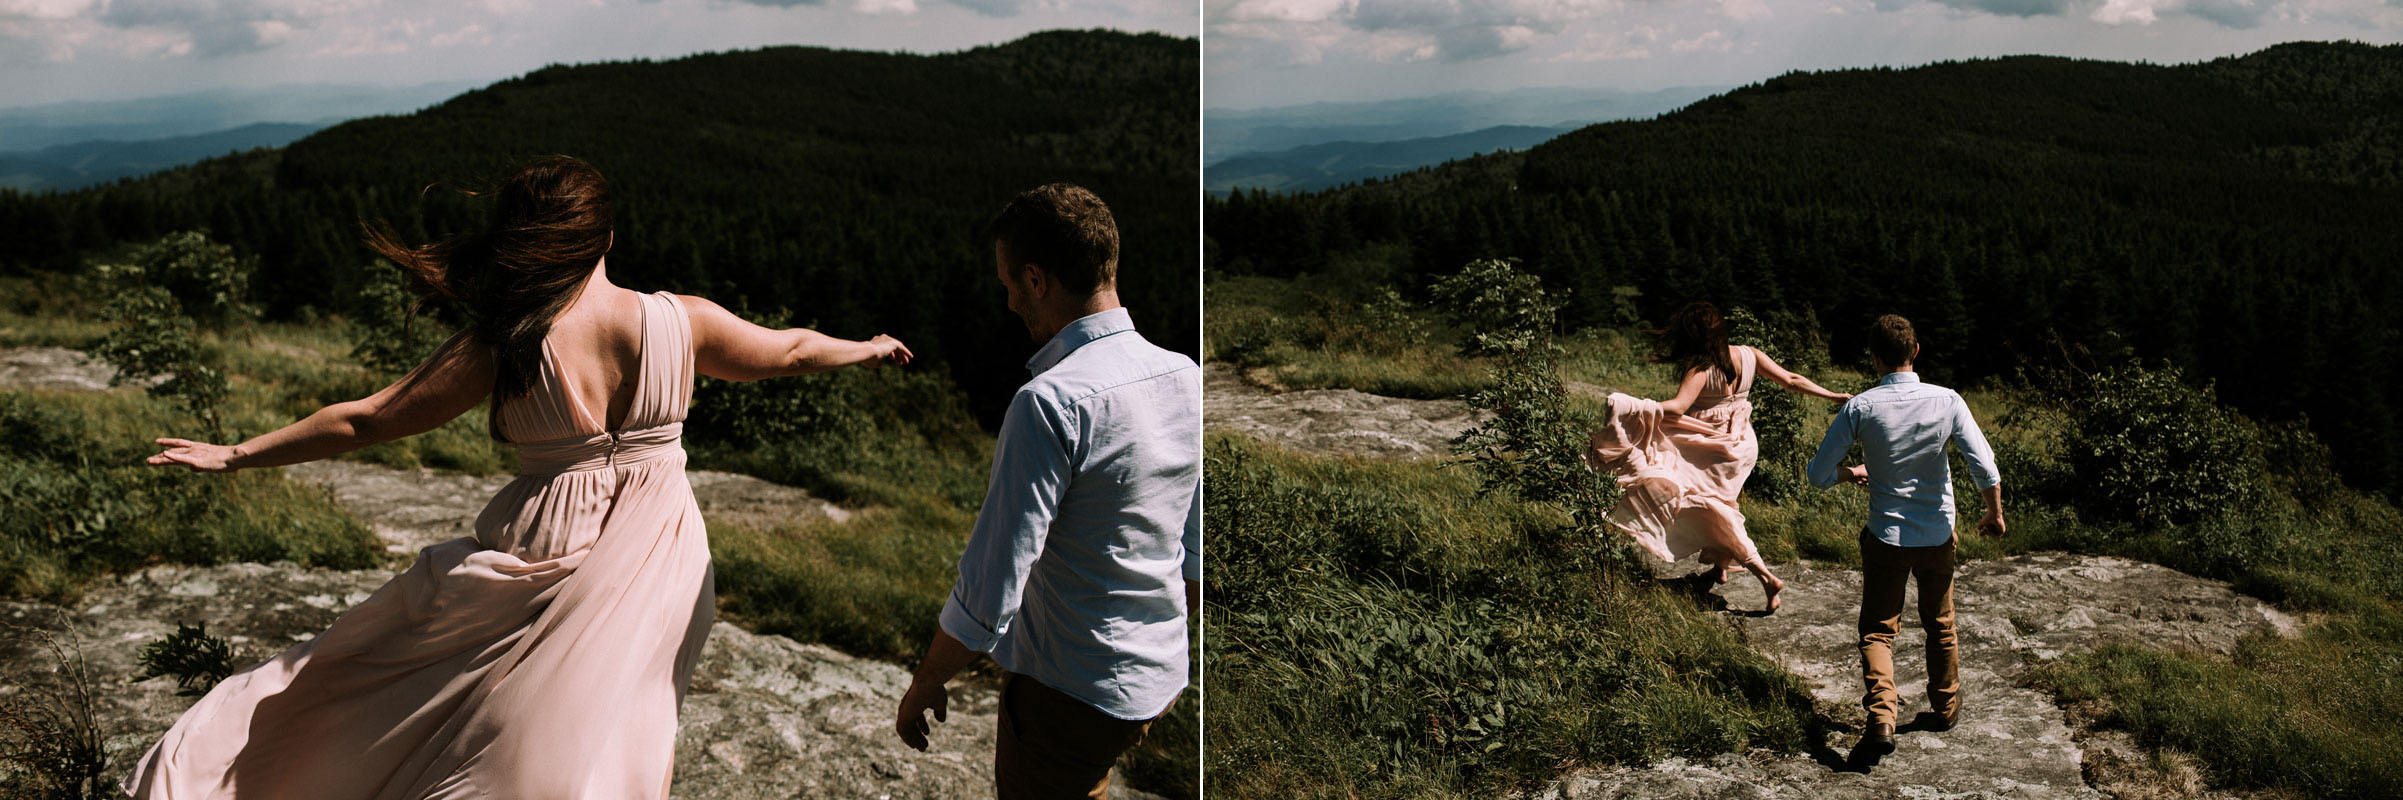 Black-Balsam-Knob-Adventure-Session-Asheville-Wedding-Photographers (30).jpg